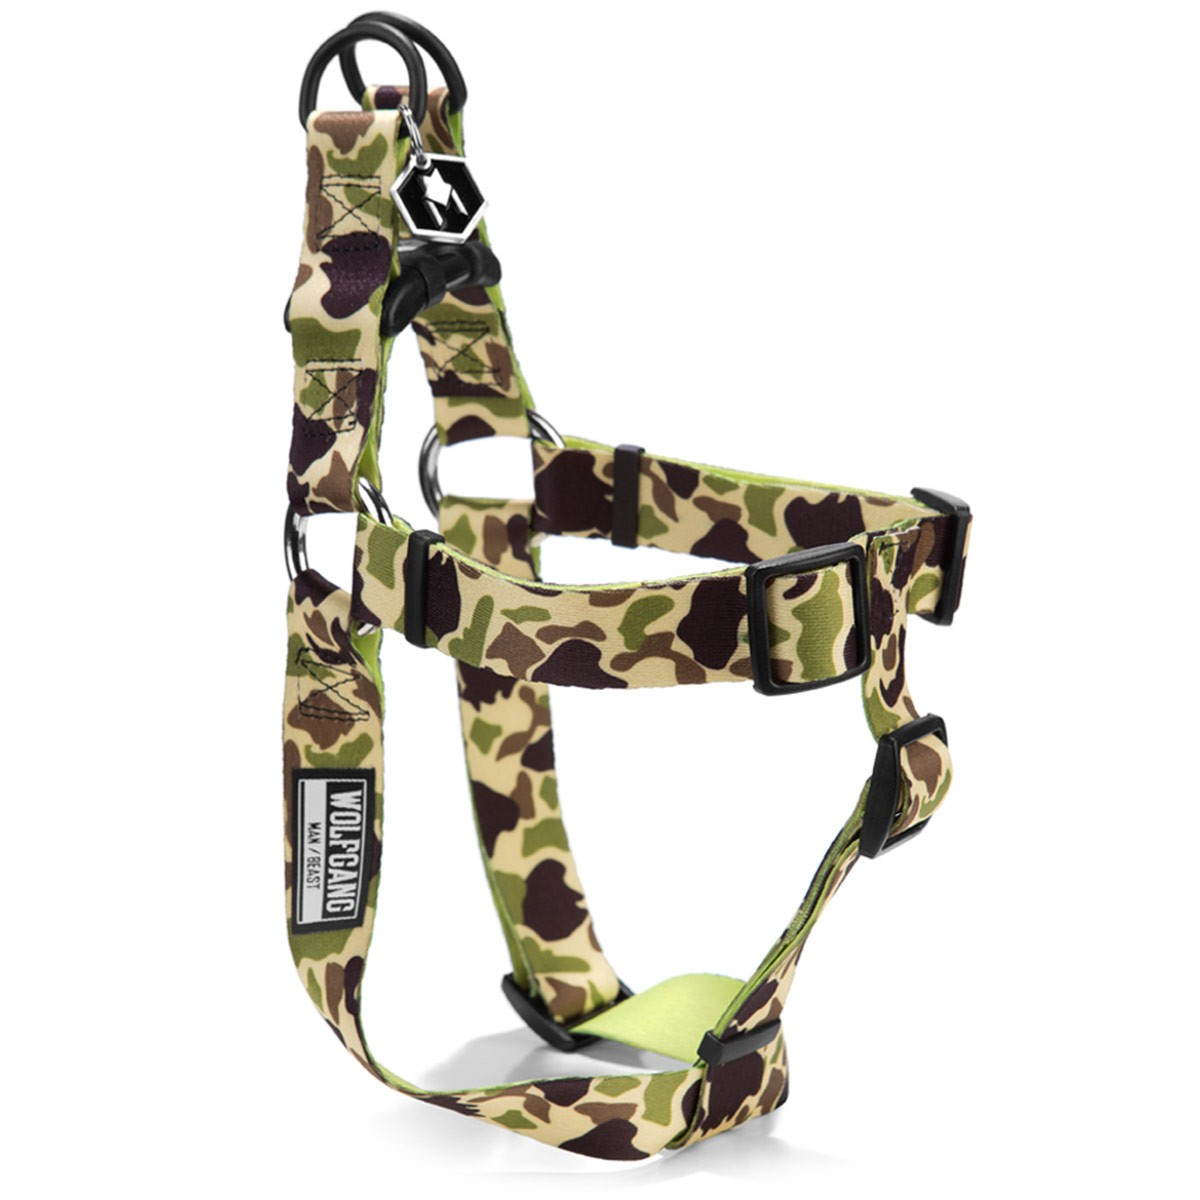 Wolfgang Duck Lime Dog Harness  - XL